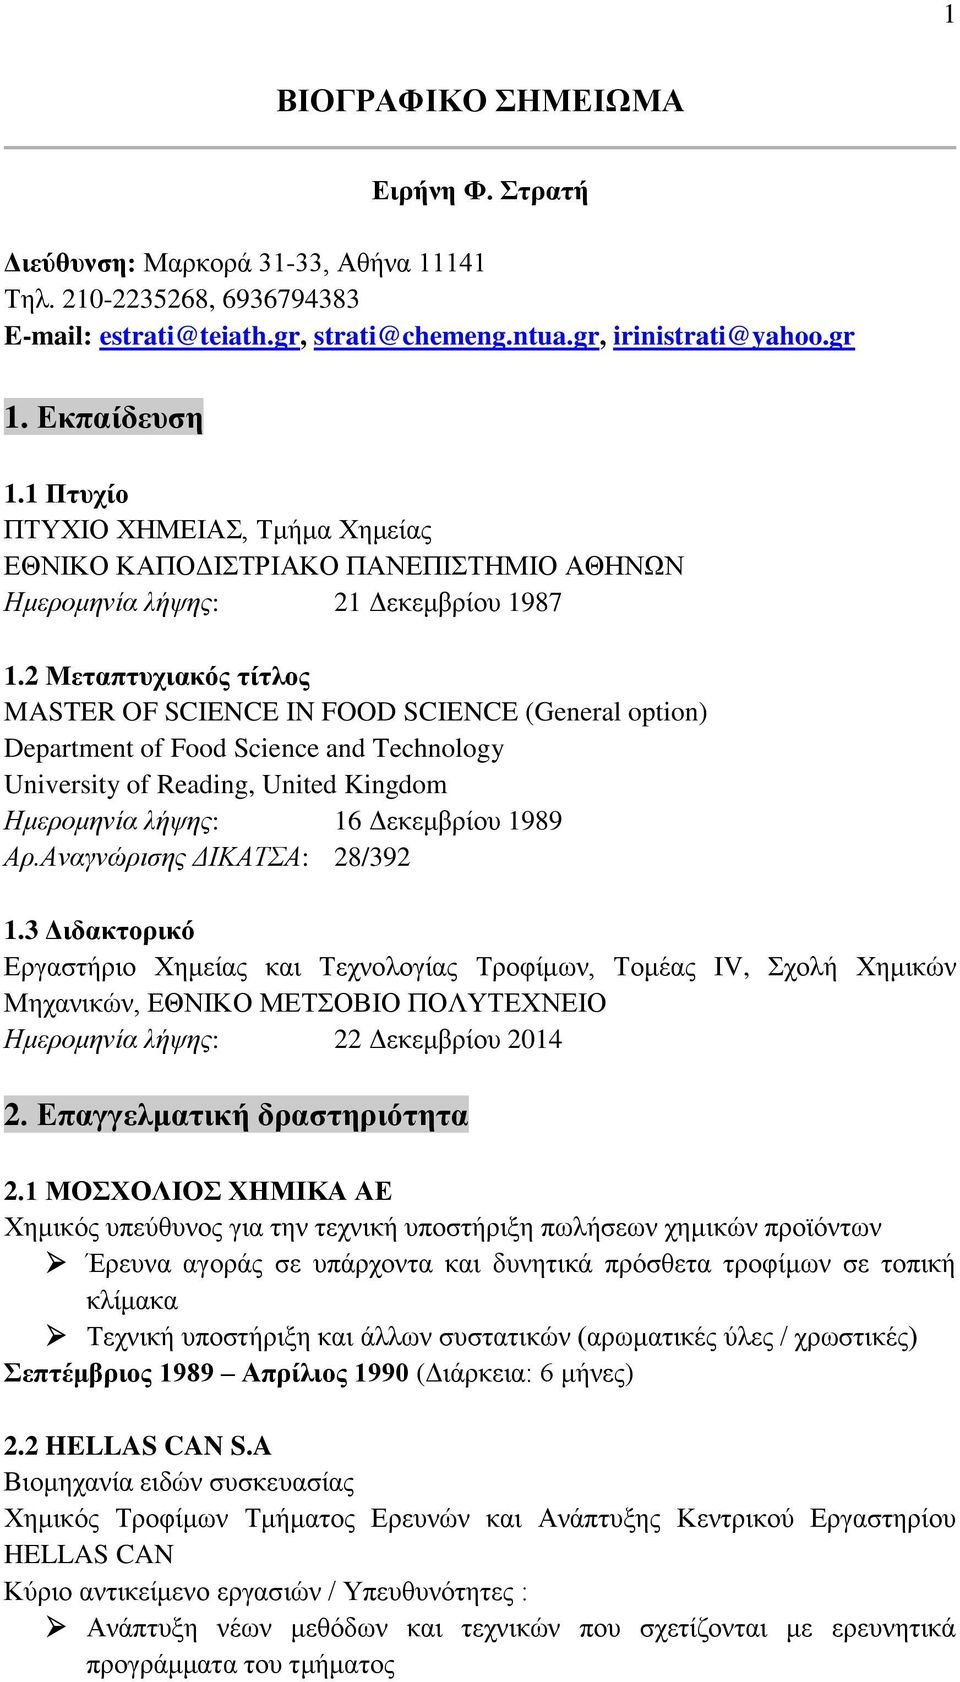 2 Μεταπτυχιακός τίτλος MASTER OF SCIENCE IN FOOD SCIENCE (General option) Department of Food Science and Technology University of Reading, United Kingdom Ημερομηνία λήψης: 16 Δεκεμβρίου 1989 Αρ.